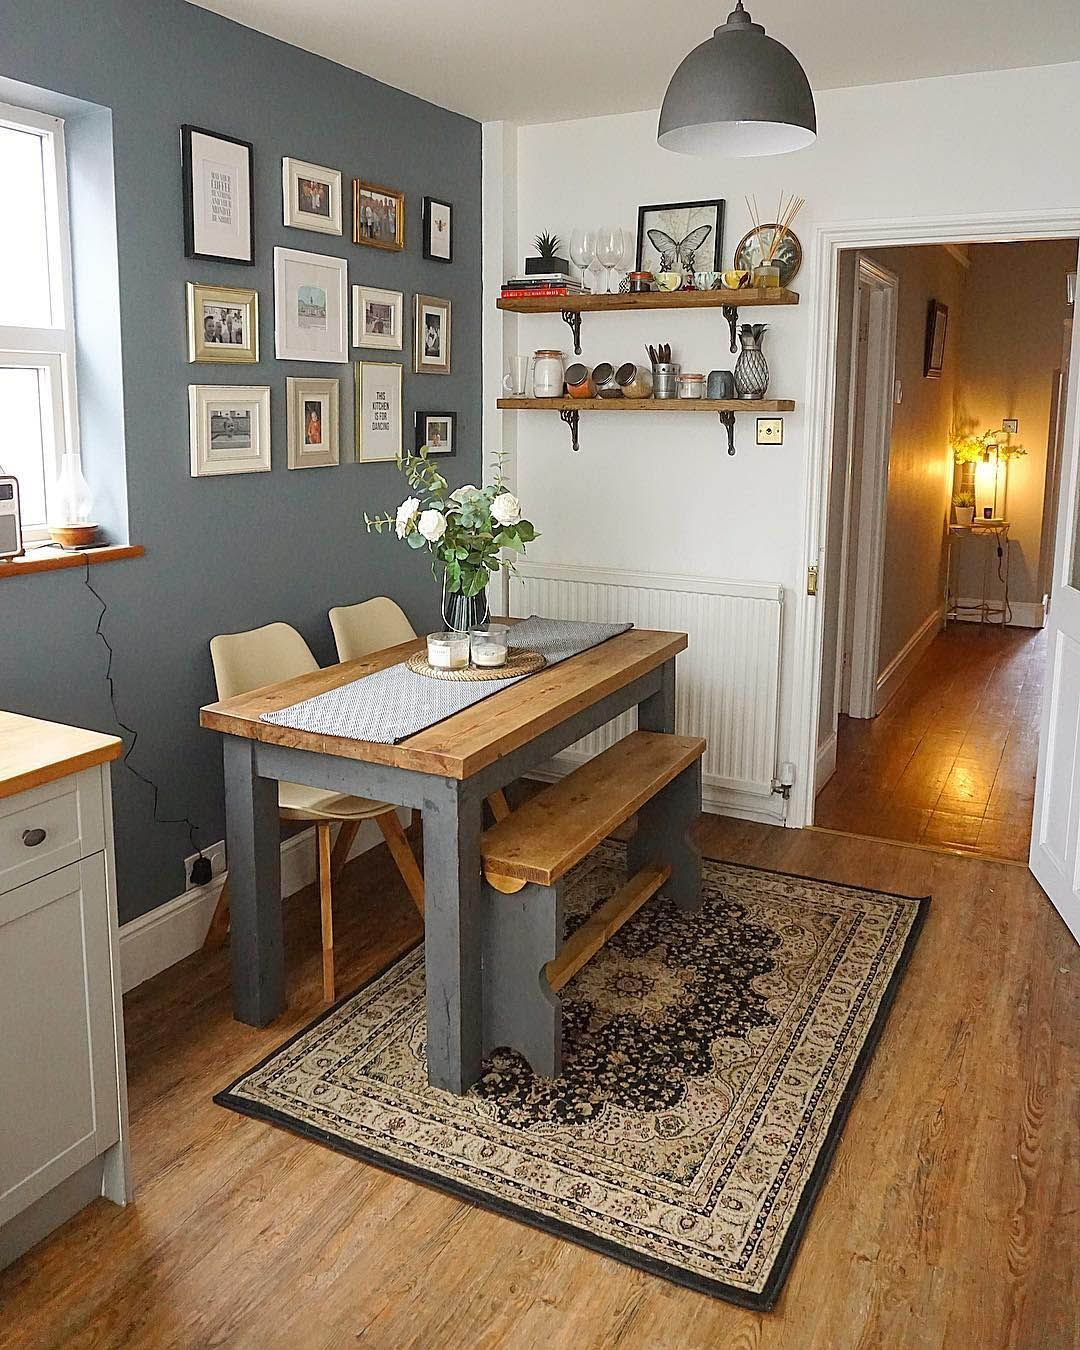 8 Small Kitchen Table Ideas For Your Home Small Kitchen